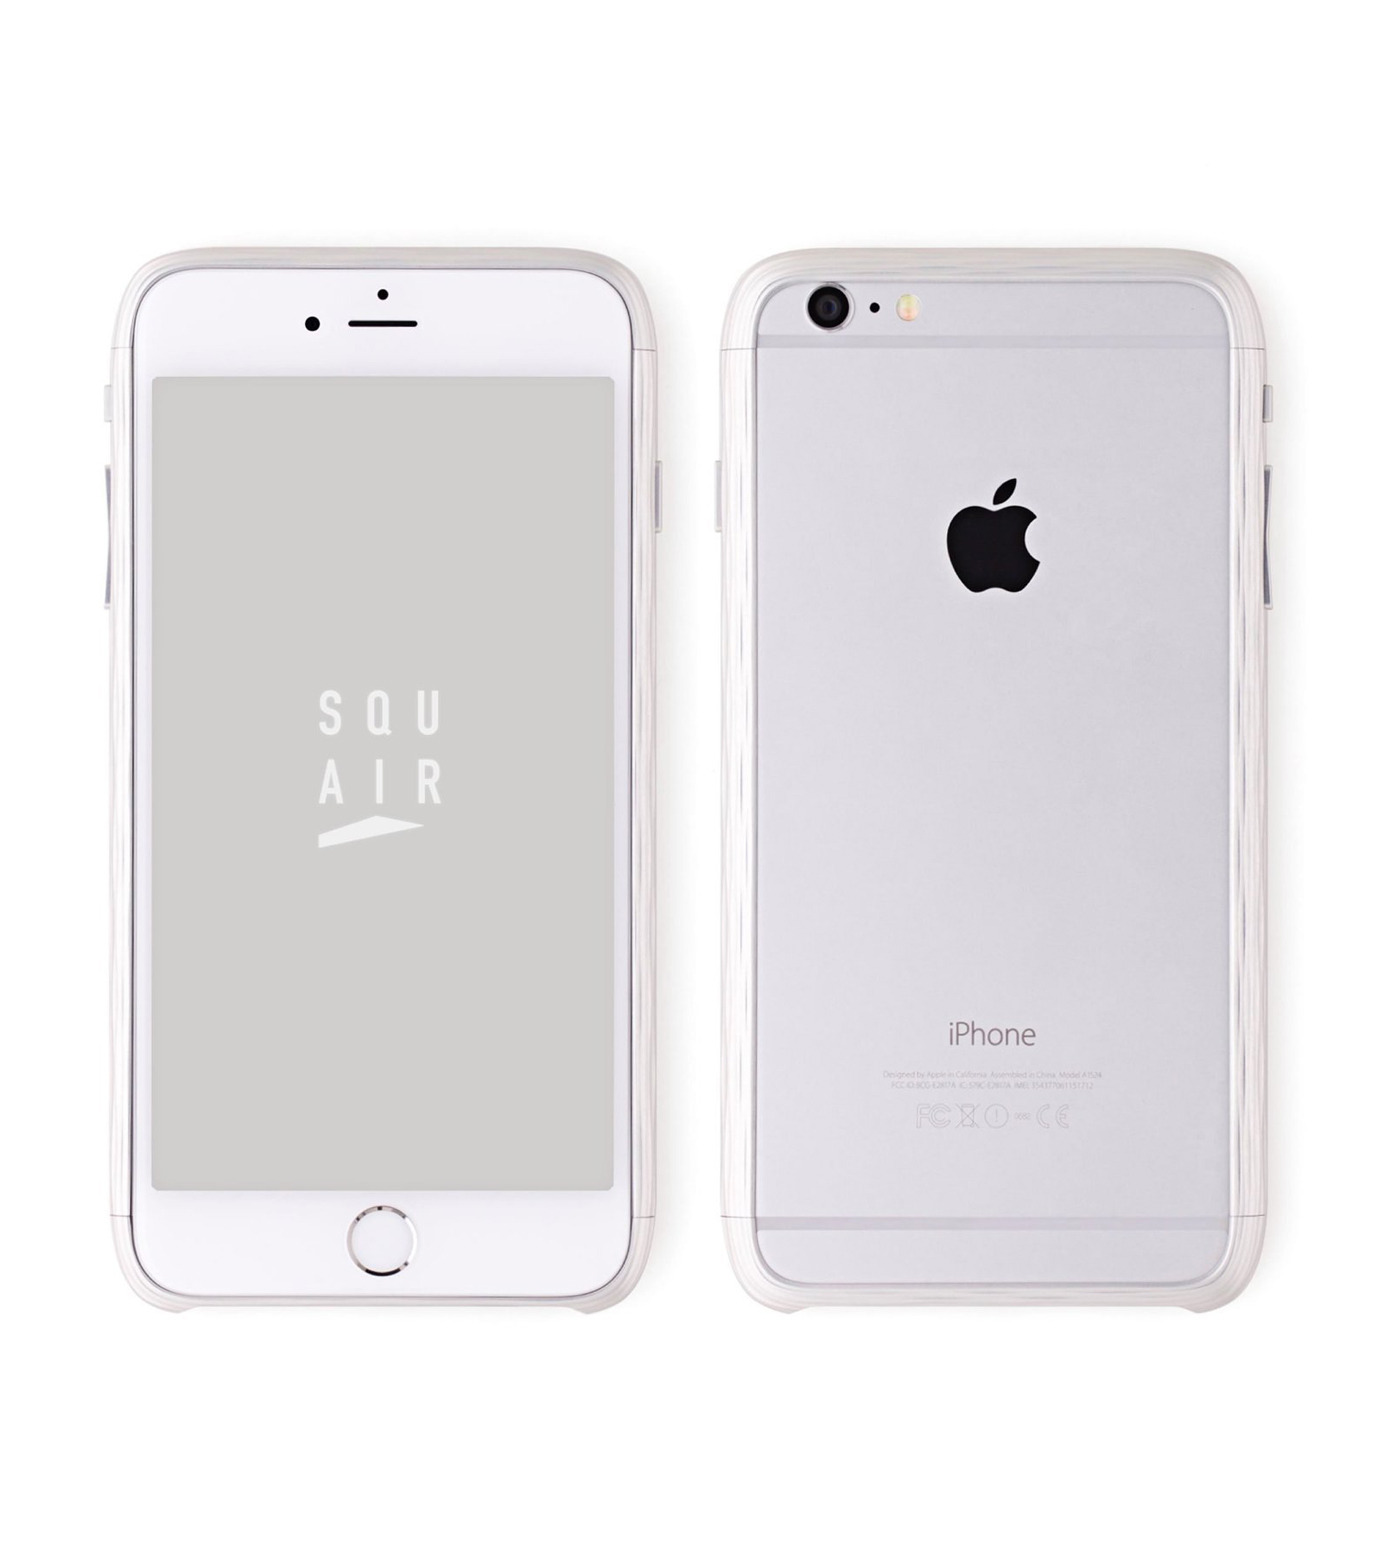 SQUAIR(スクエア)のThe Dimple for iPhone6s plus-SILVER(ケースiphone6plus/6splus/case iphone6plus/6splus)-SQDMP630-SLV-1 拡大詳細画像1